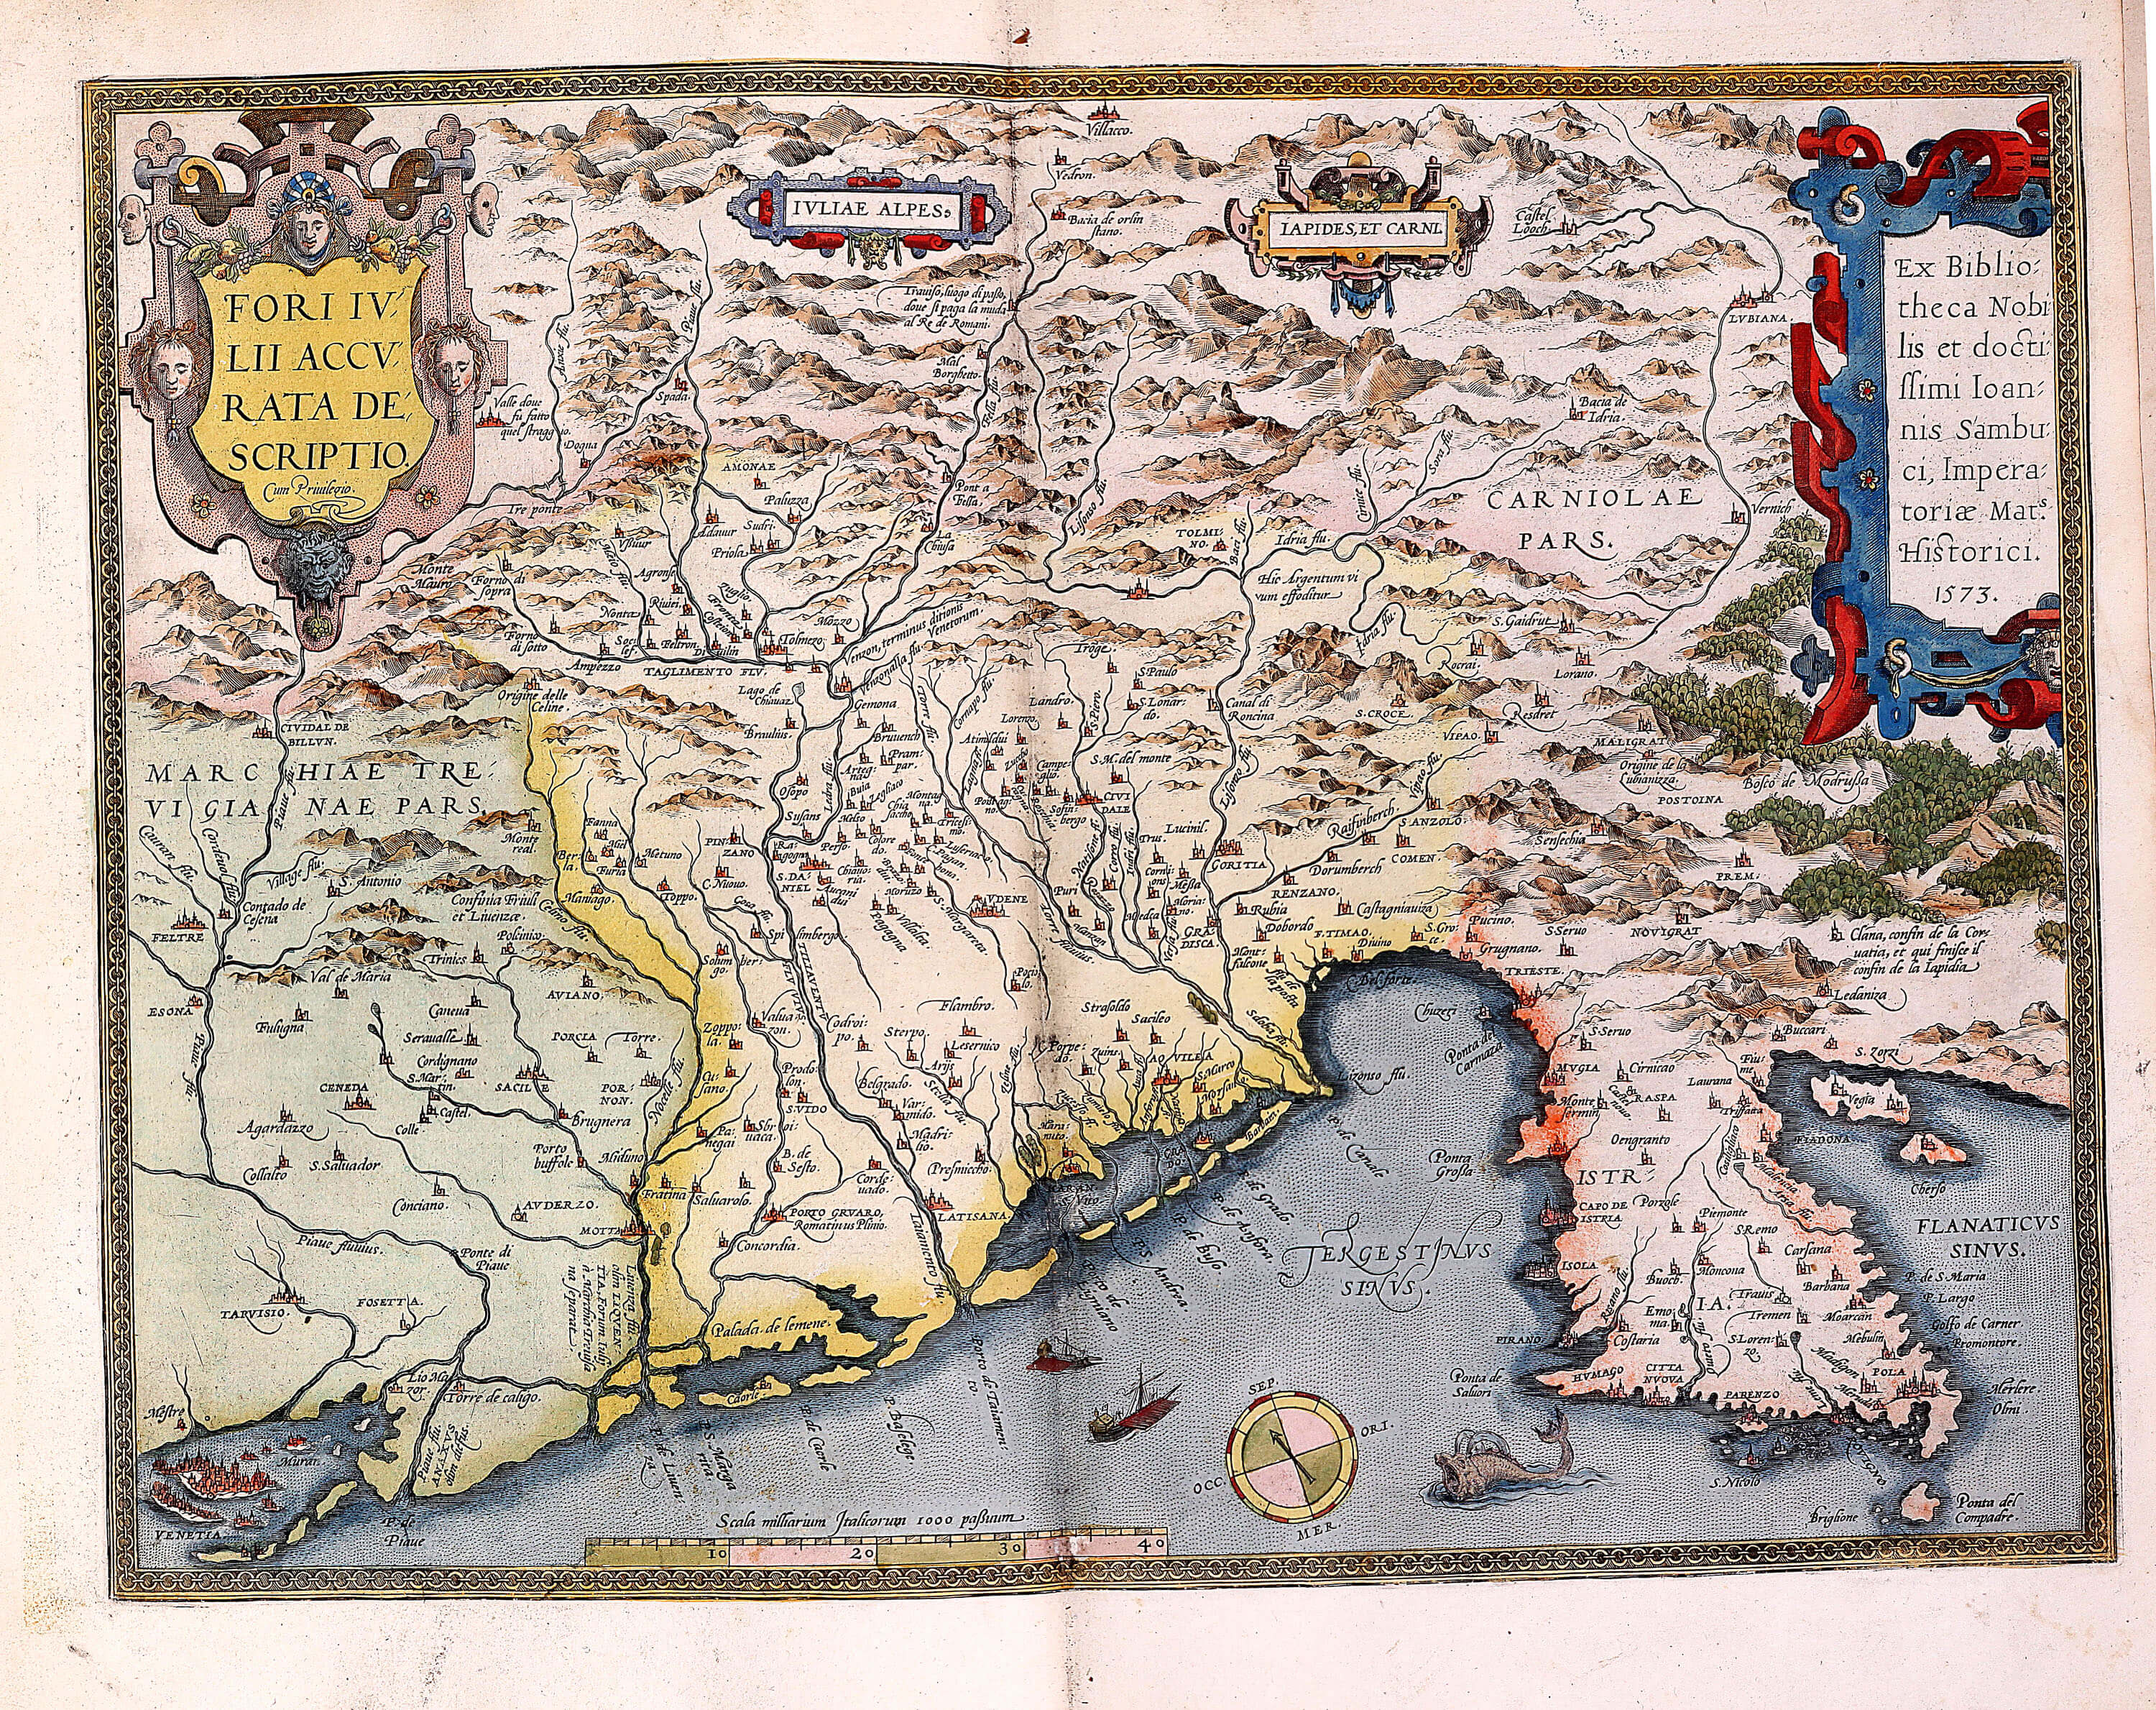 World atlas by abraham ortelius pp a 34 1589 part 2 sheets 46 88 pp a 34 55 forum iulli italy gumiabroncs Gallery